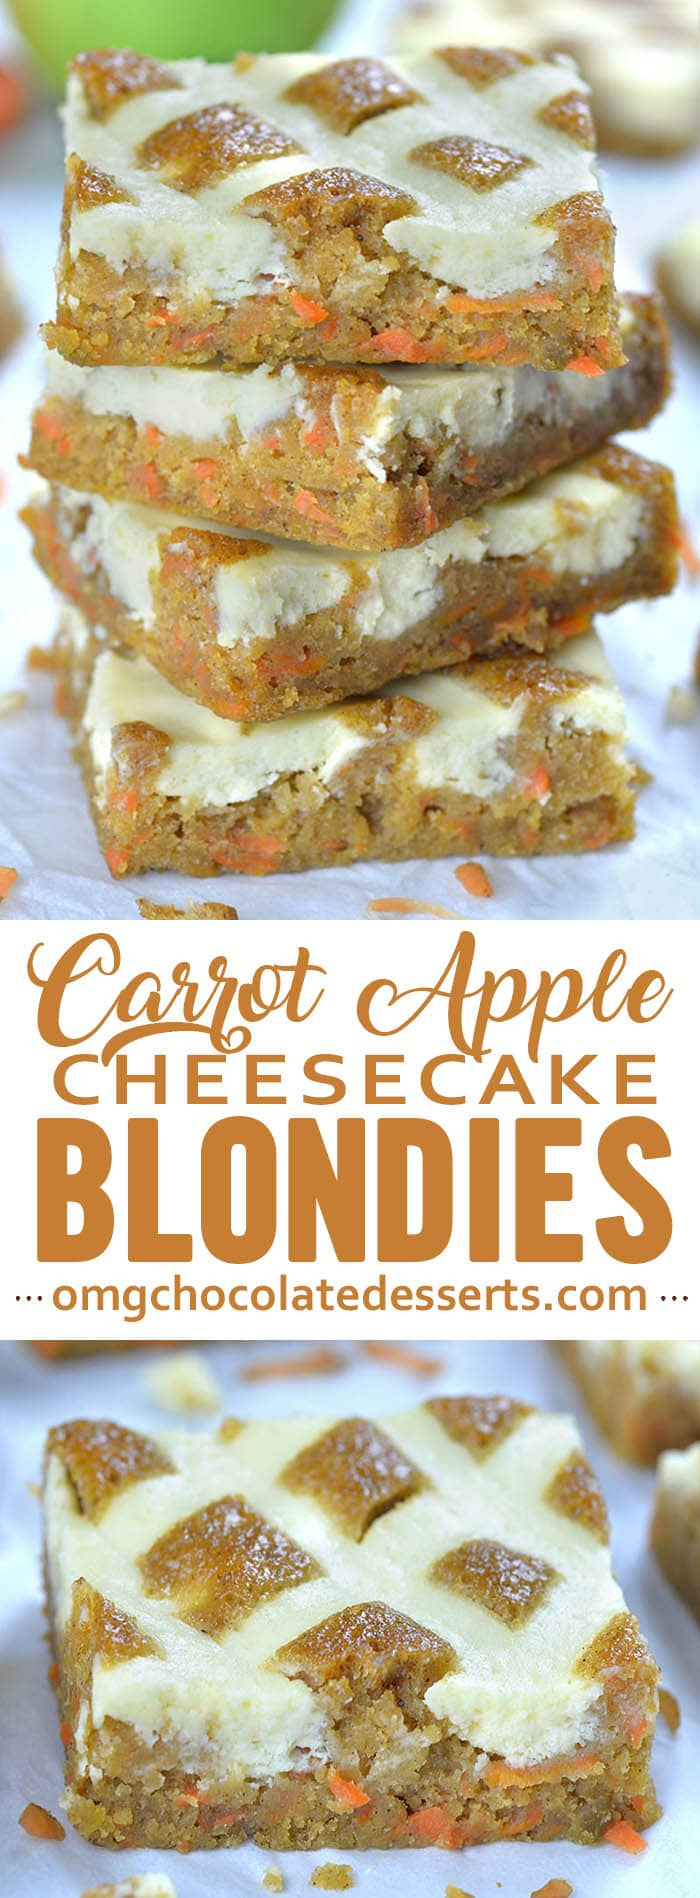 Carrot Apple Cheesecake Blondies is simple and easy recipe for delicious blondie bars infused with carrots and apples for flavor, natural sweetness and incredible moisture.